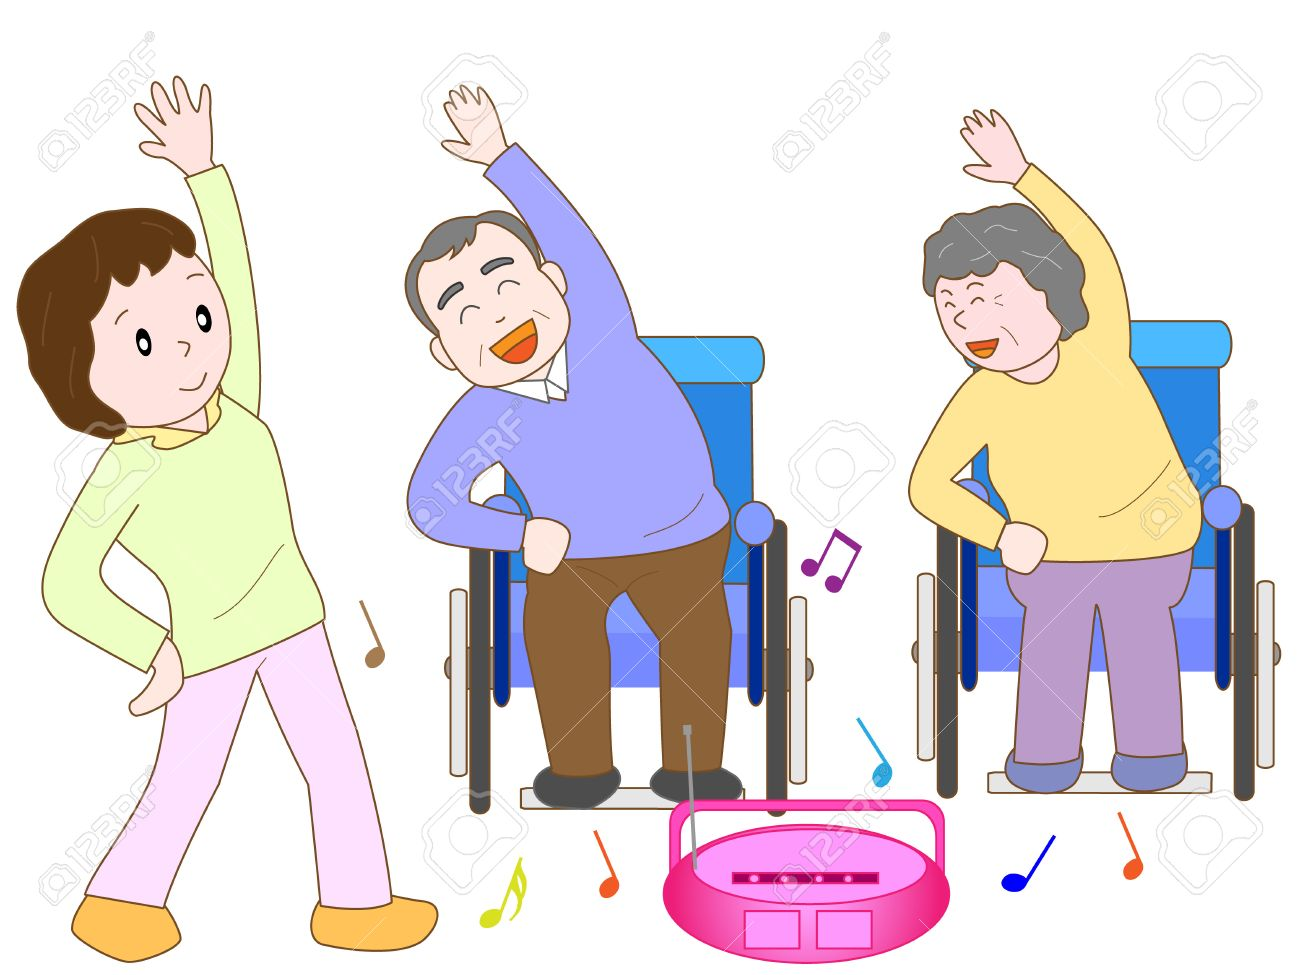 Exercise clipart elderly. Exercising cliparts making the